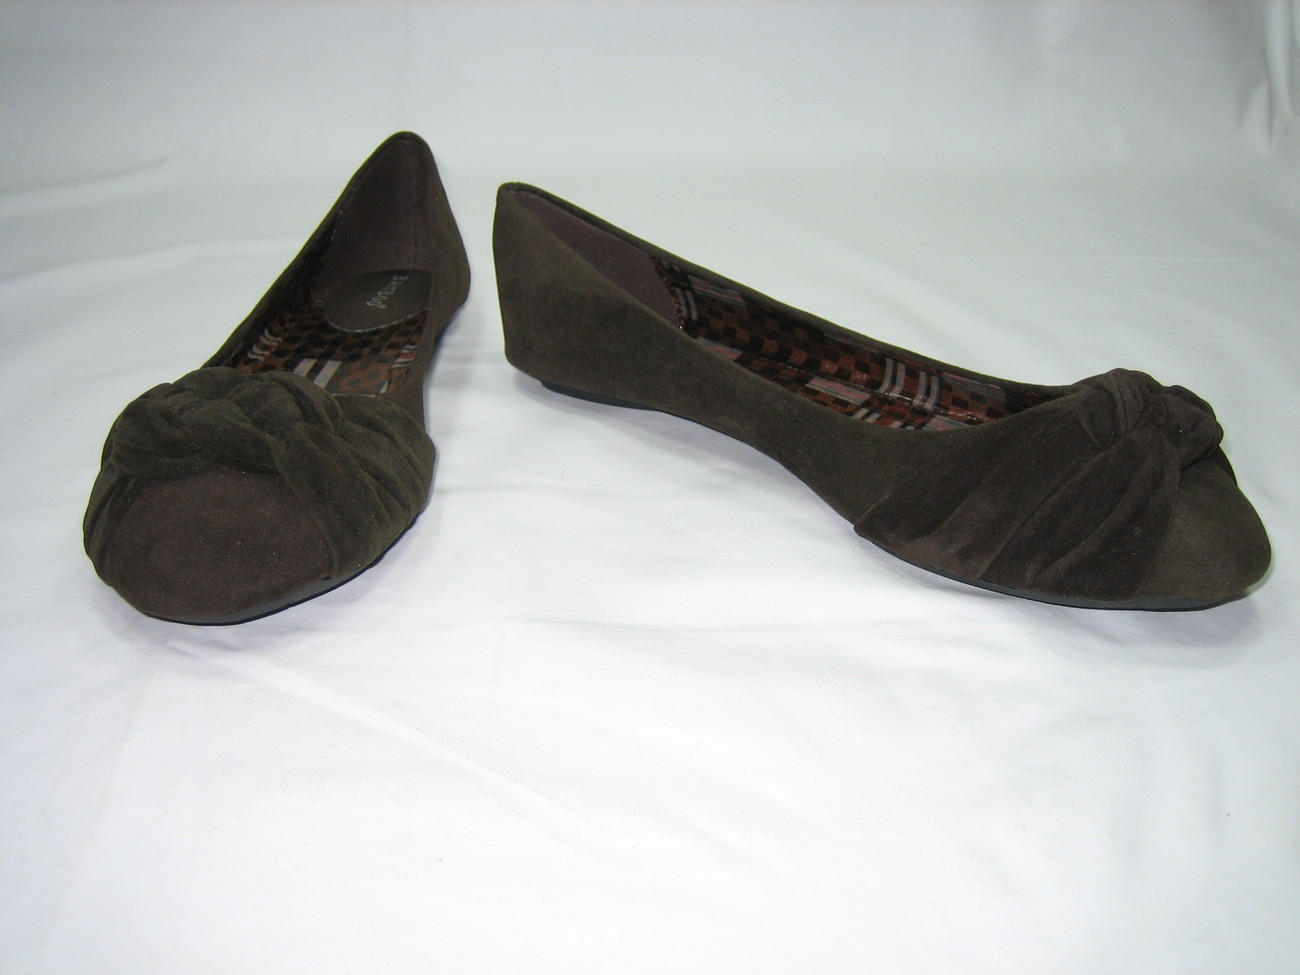 Bamboo ballerina comfort flats pumps women's shoes knotted vamp faux suede brown